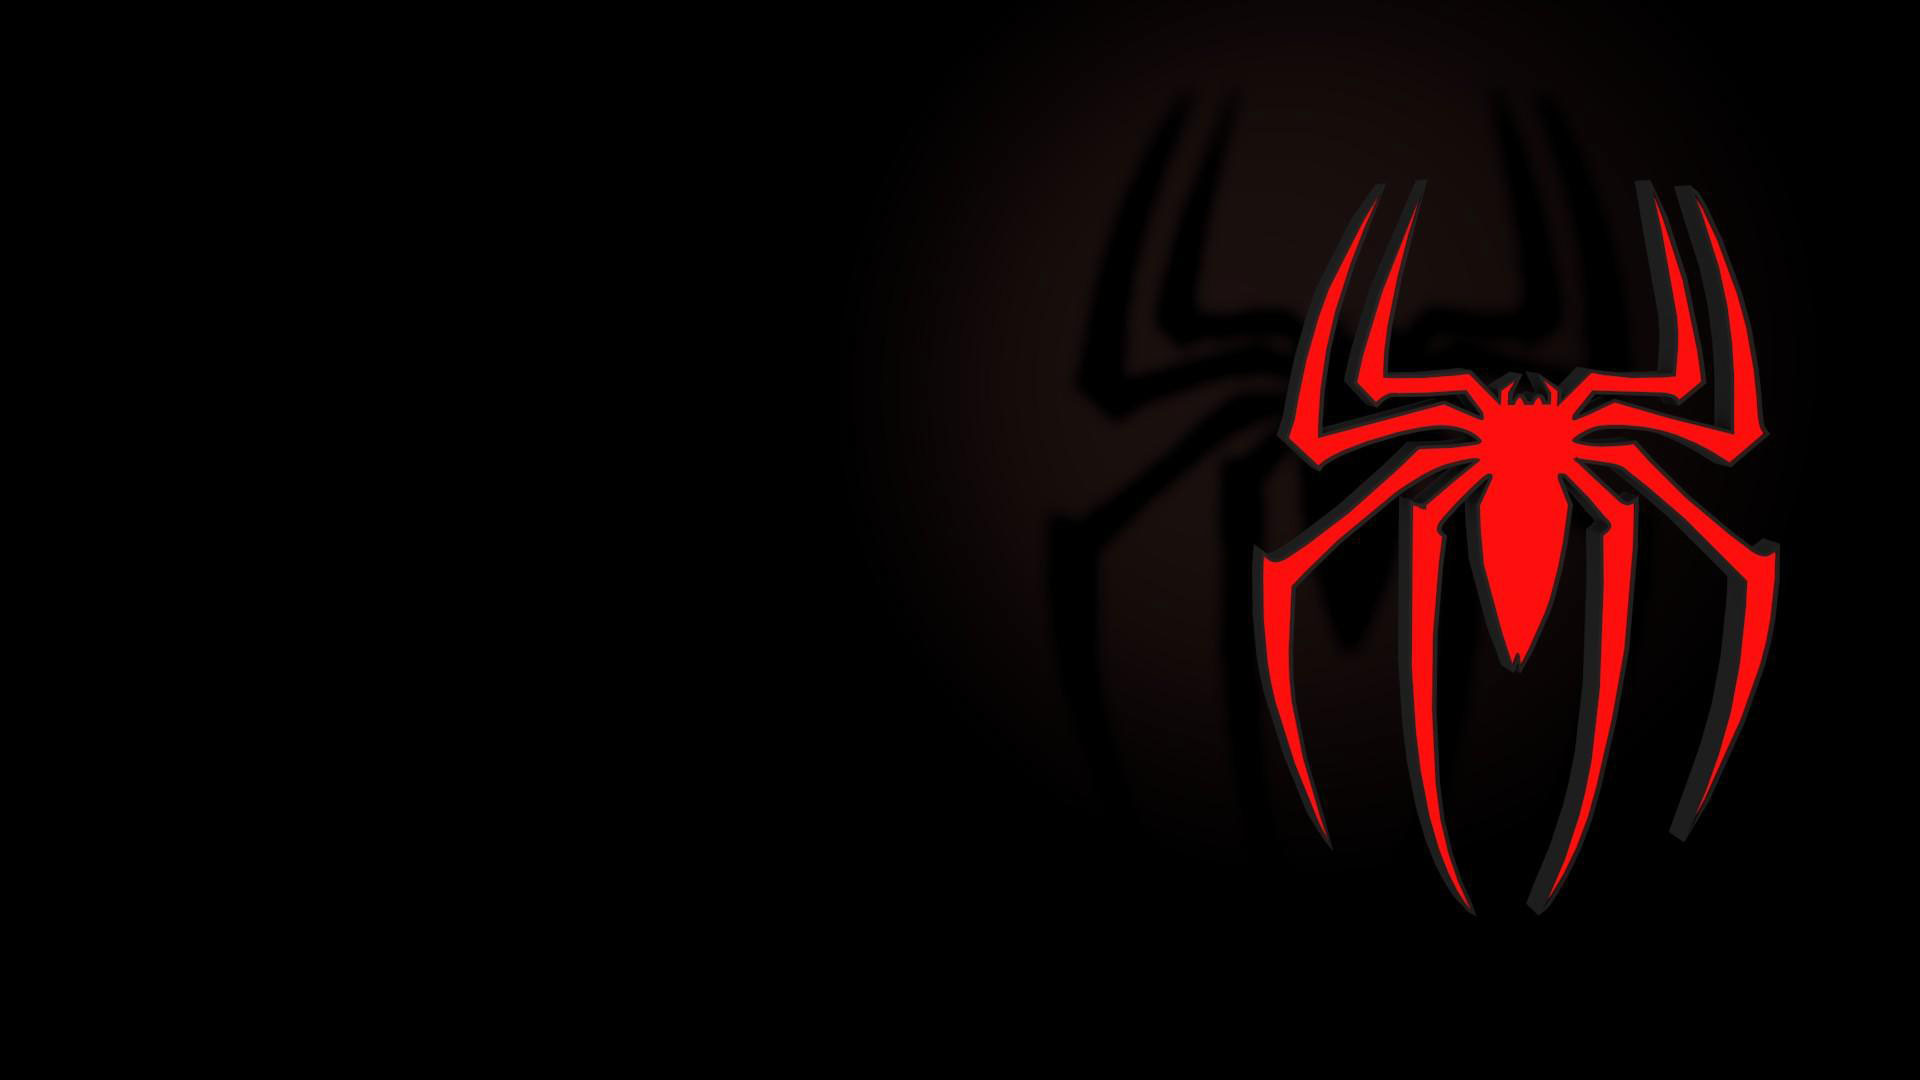 spiderman logo wallpaper 183��